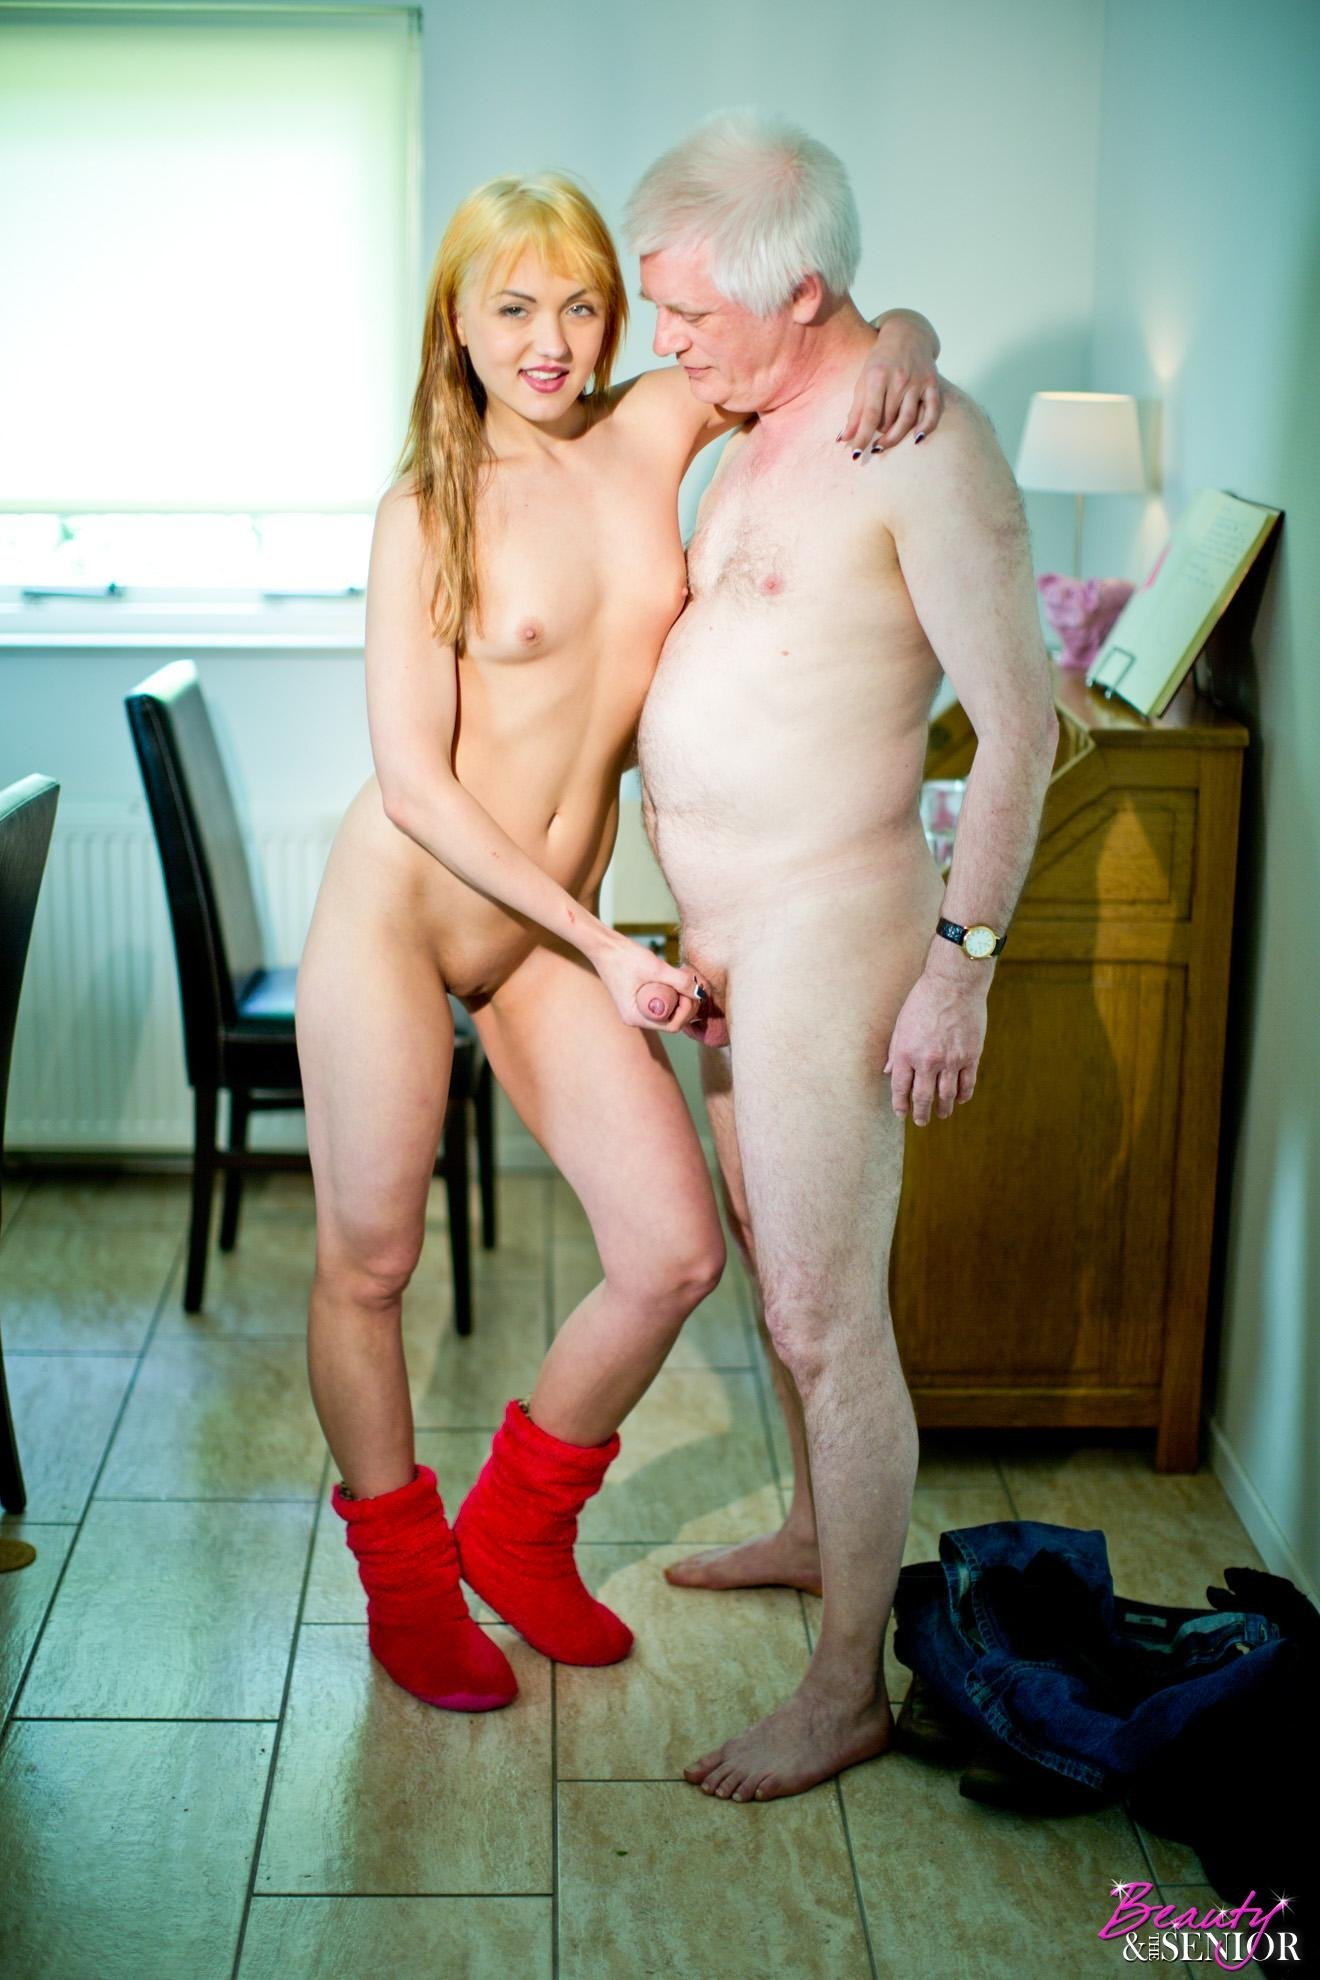 very-young-girls-on-old-guys-download-free-adult-movies